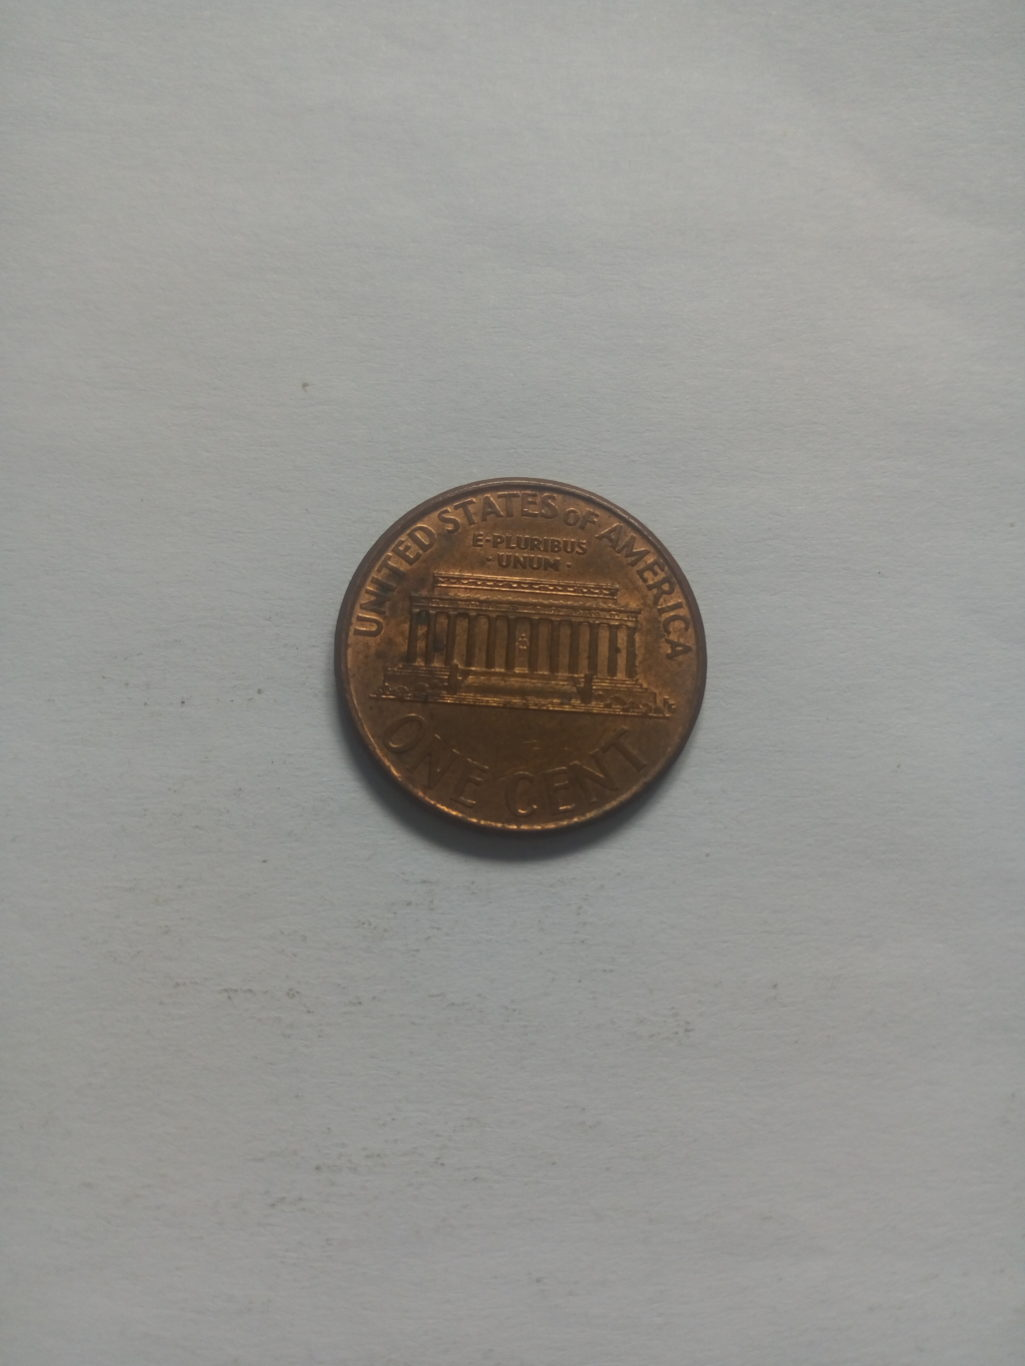 2002_ united states of america 1 cent